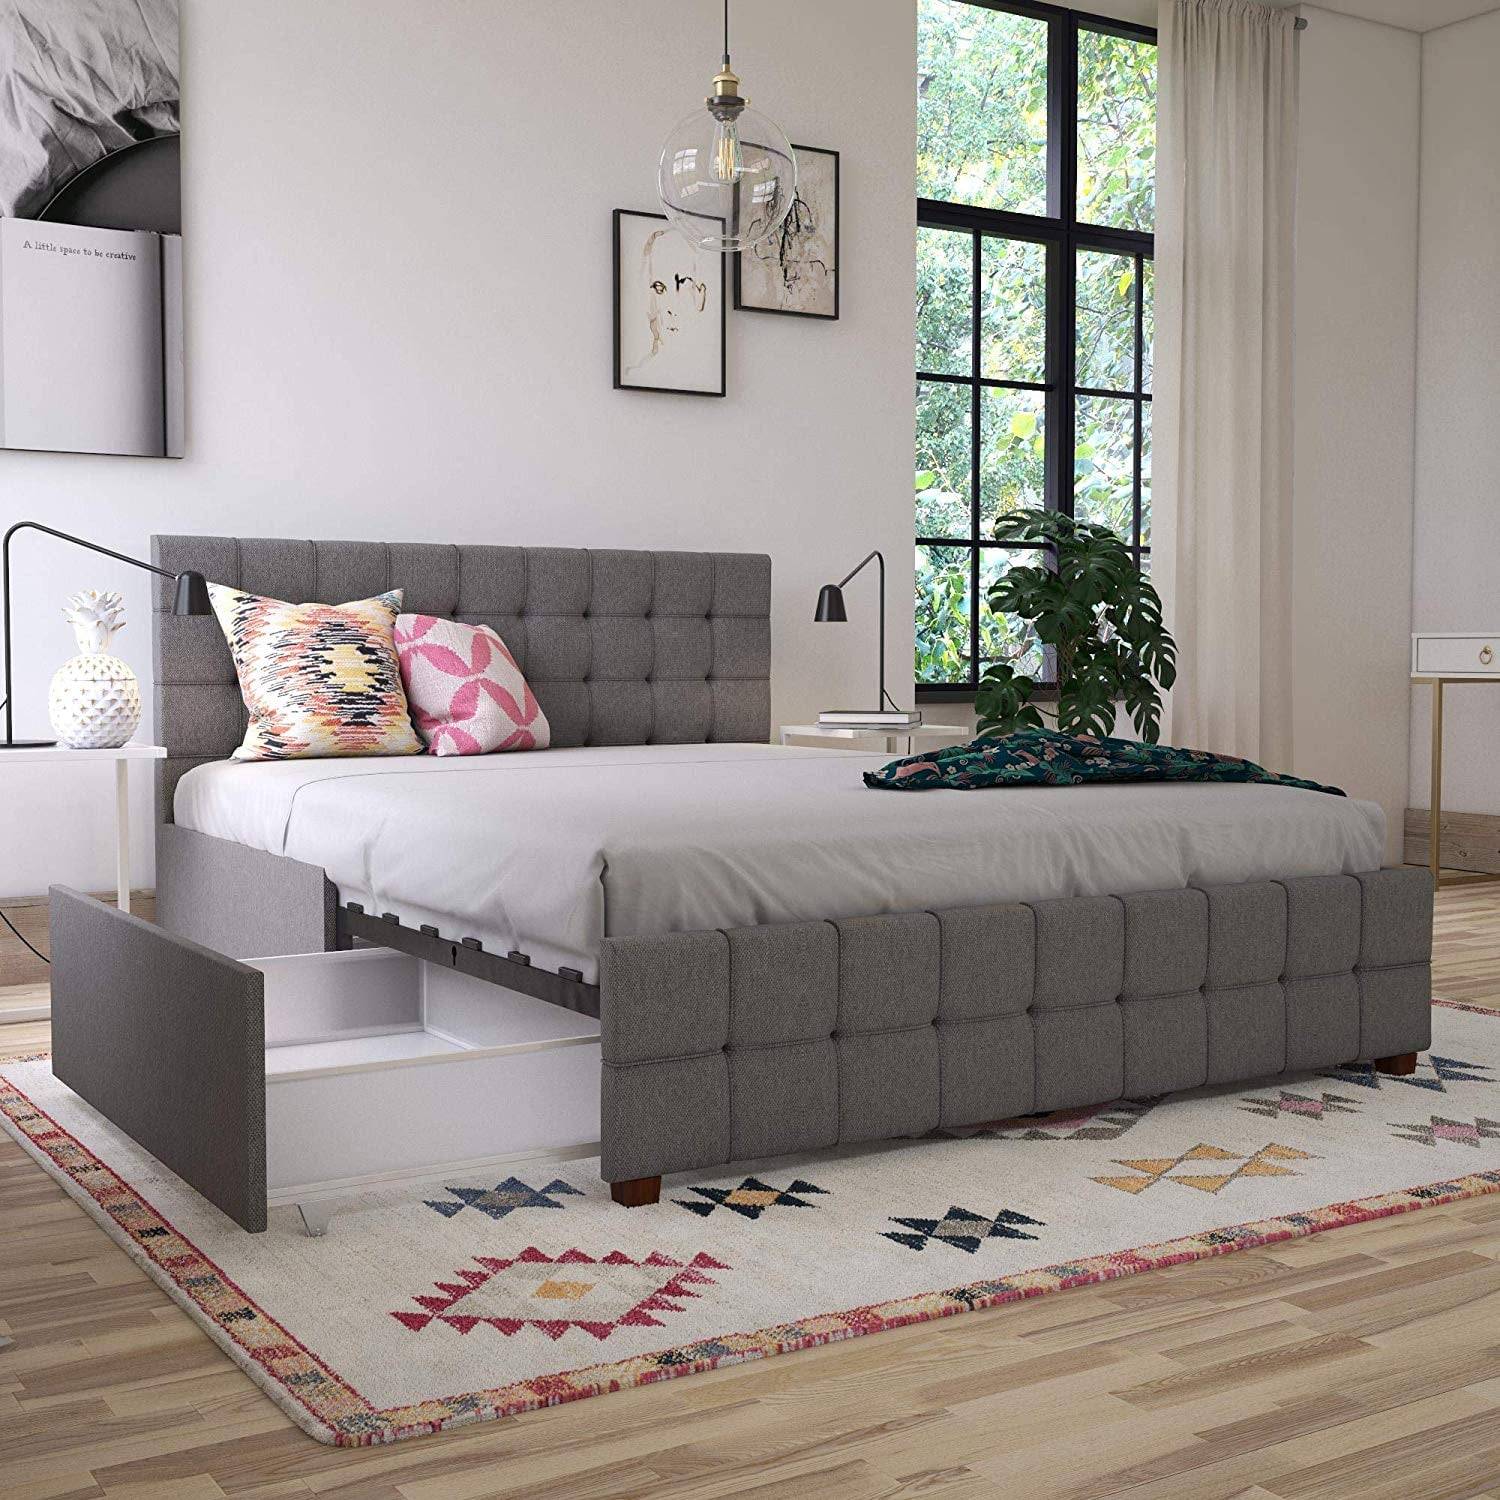 Best Bedroom Furniture For Small Spaces Popsugar Home